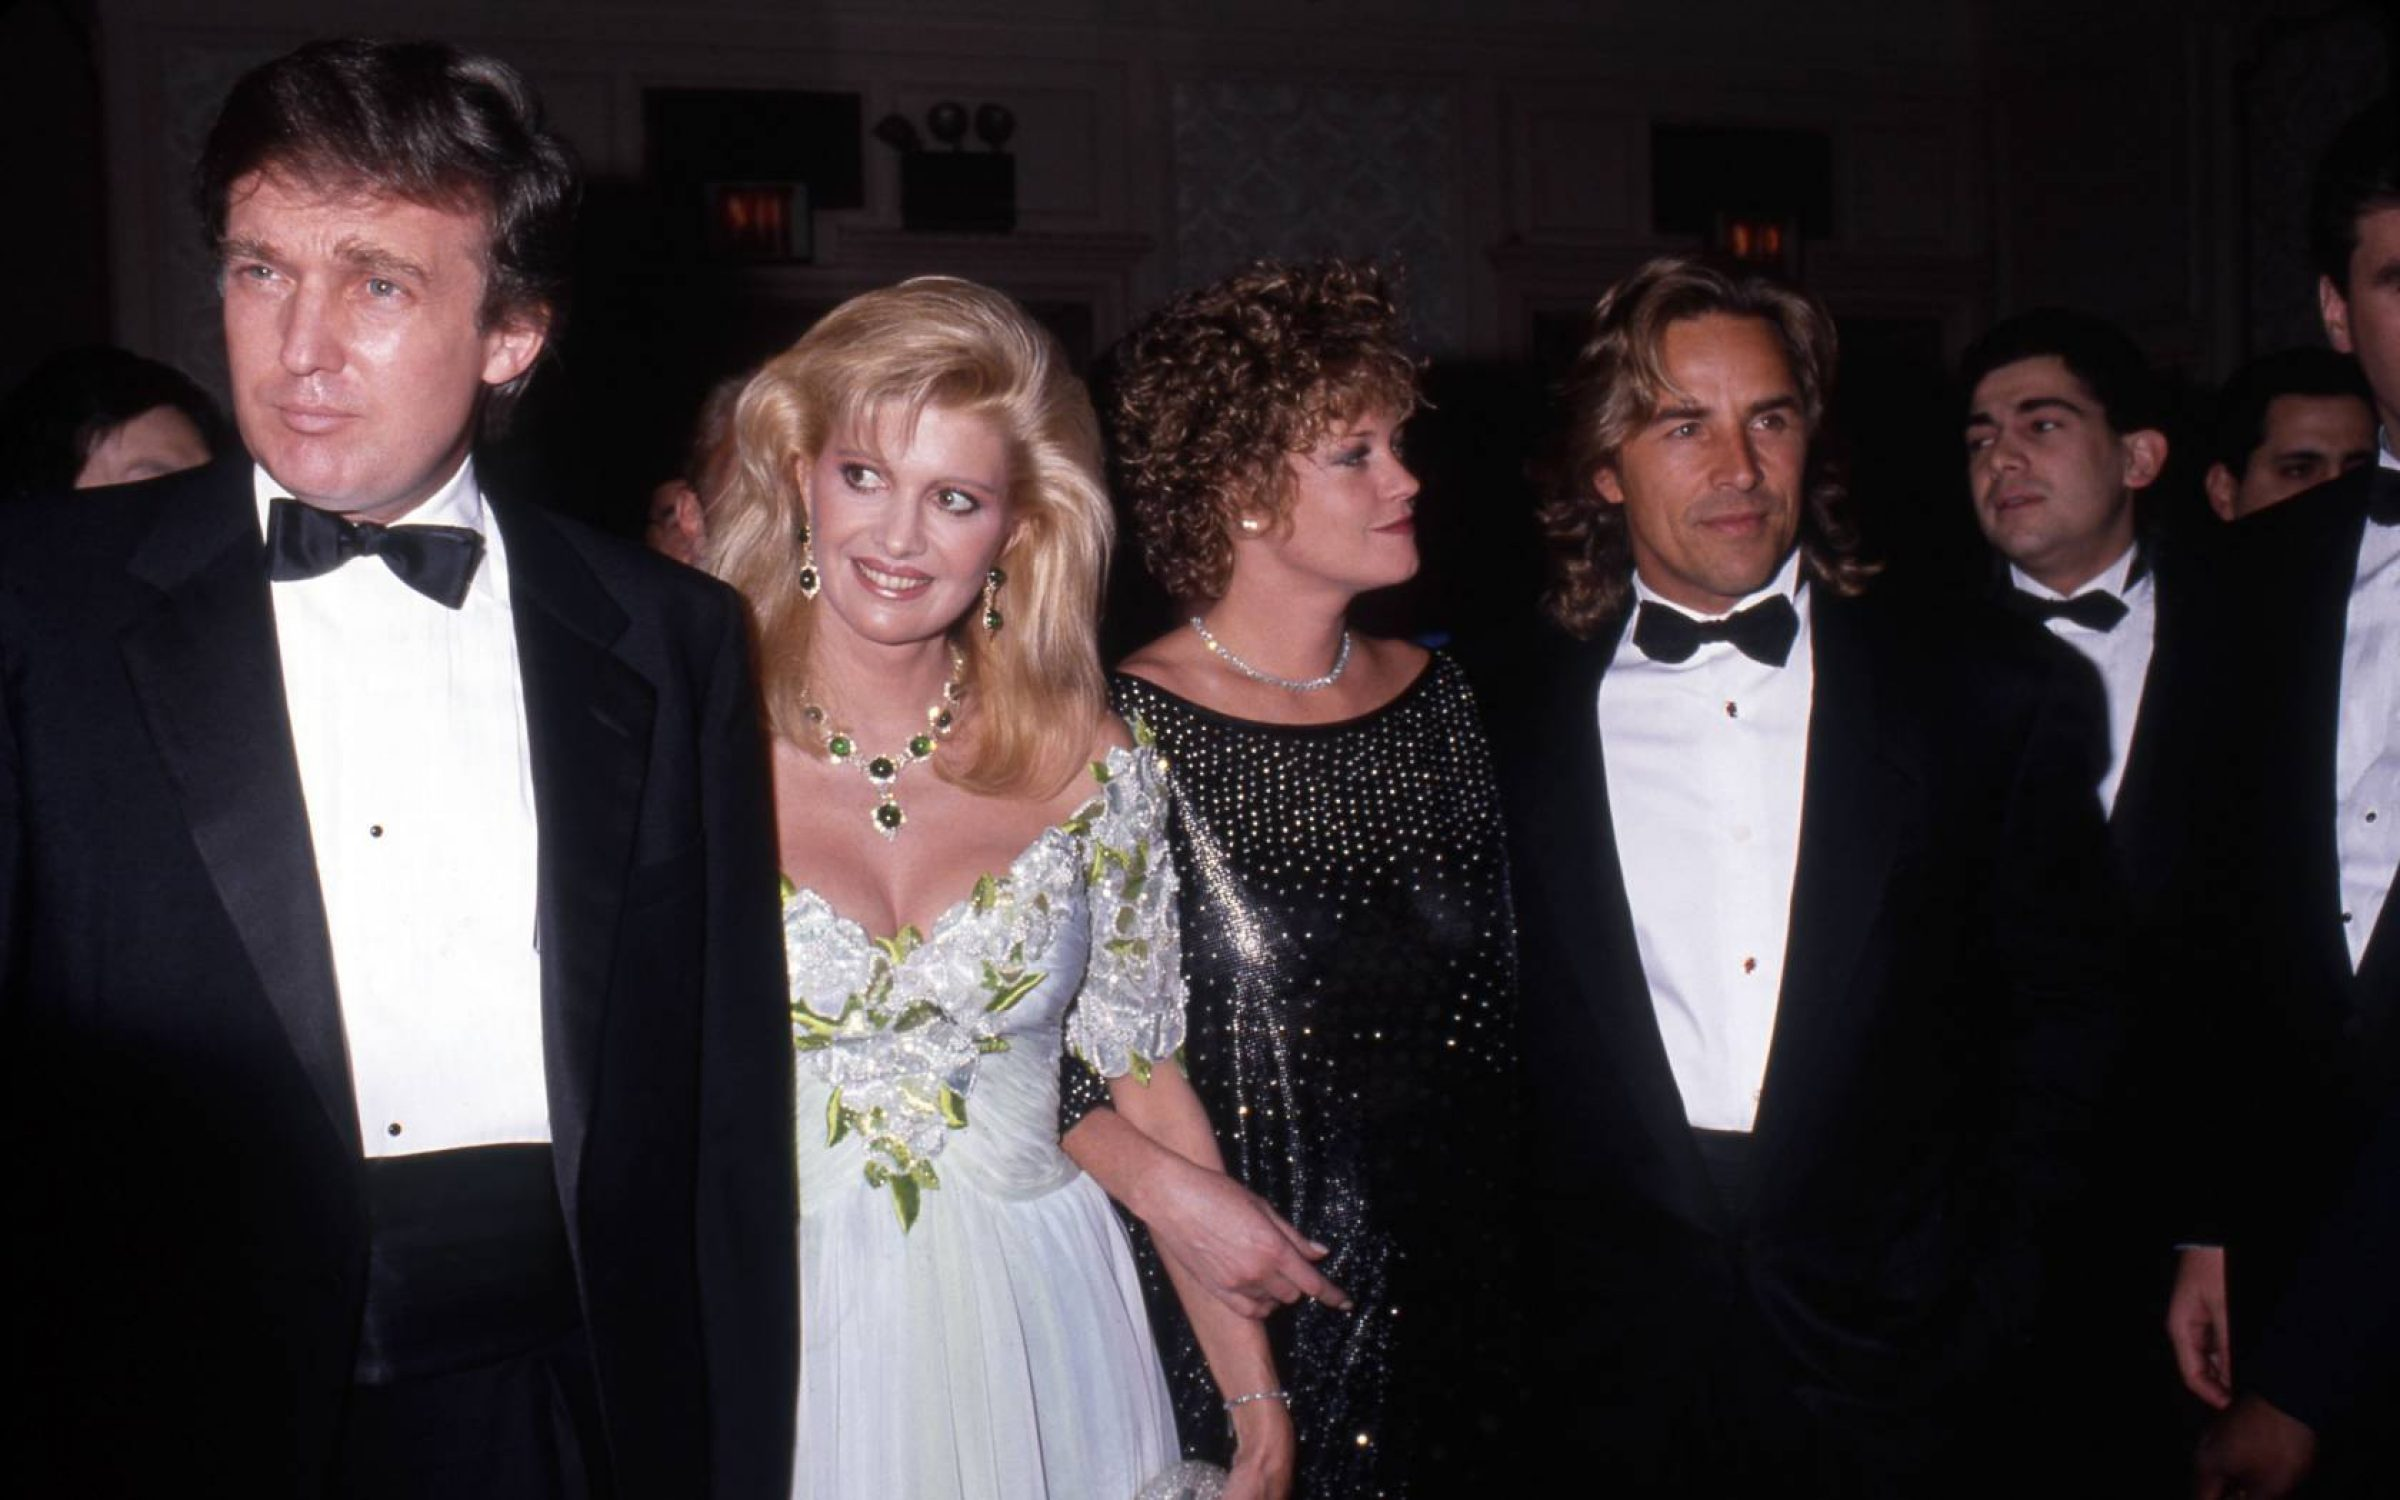 Celebrity Donald Trump at a party in New York, 1989. Credit: Vinnie Zuffante / Getty Images.